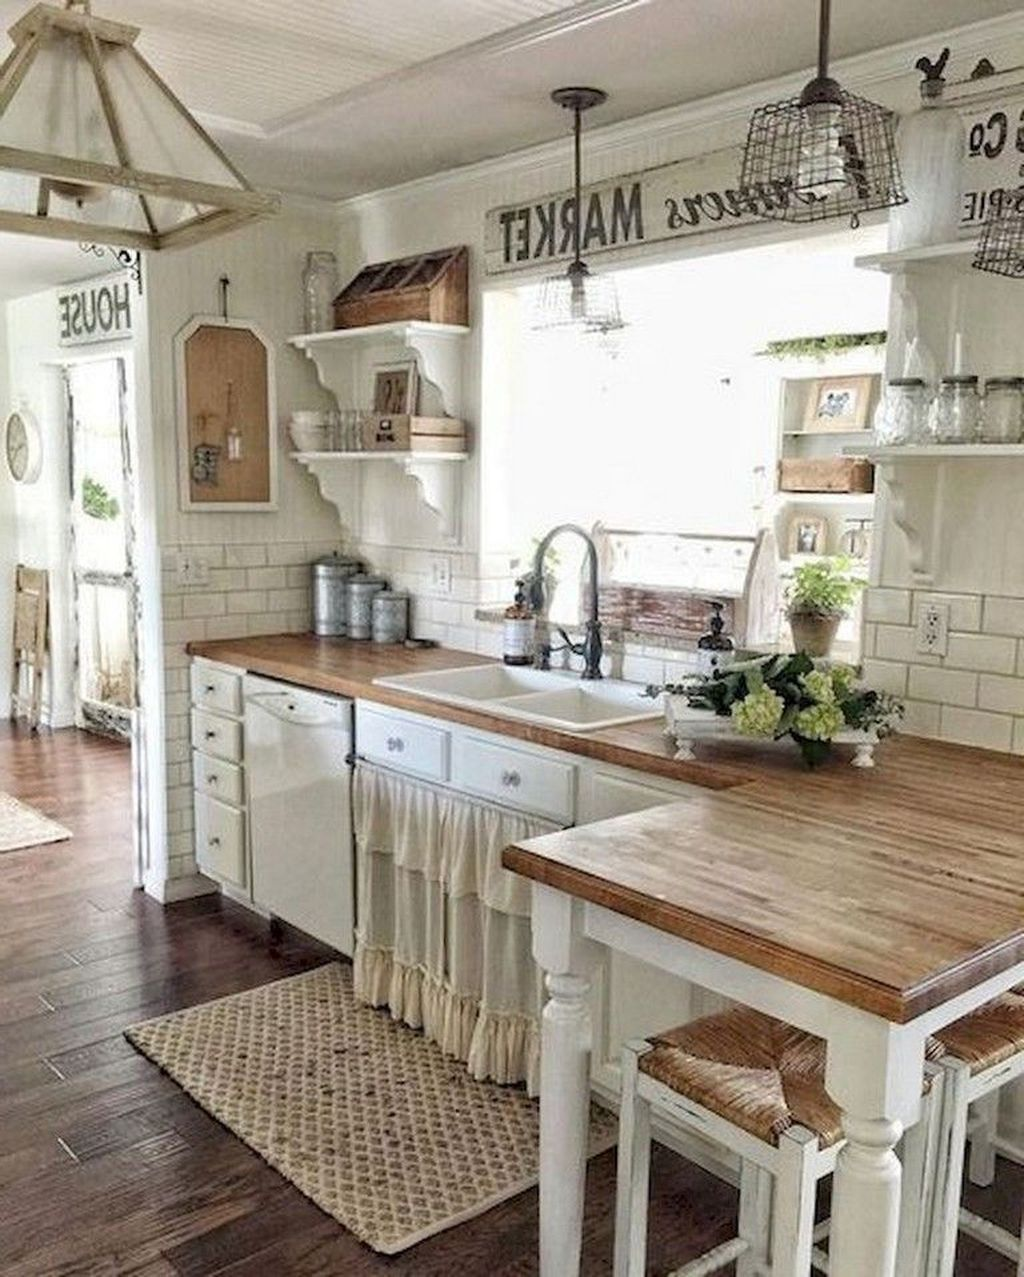 Fabulous French Country Kitchens Design Ideas 27